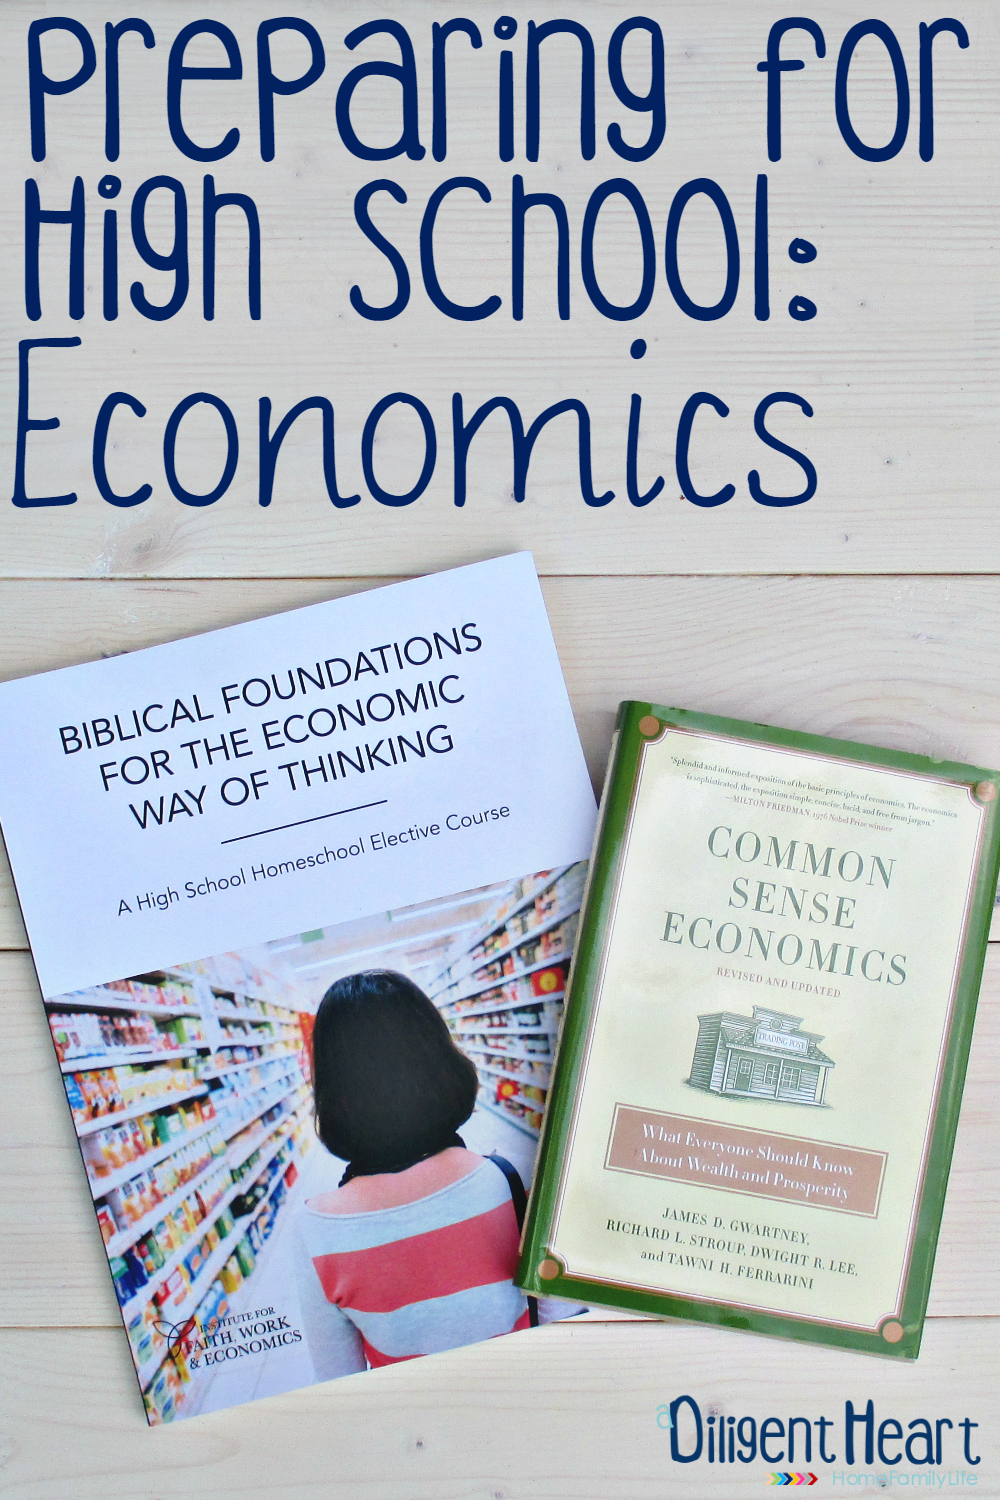 High School planning can be a bit daunting. I'm no stranger to this, as I am right dab in the midst of planning High School. In this post, I am sharing a High School Economics Course that we are considering. Come on over and learn more about it, as well as my thoughts on the overall course.I adiligentheart.com